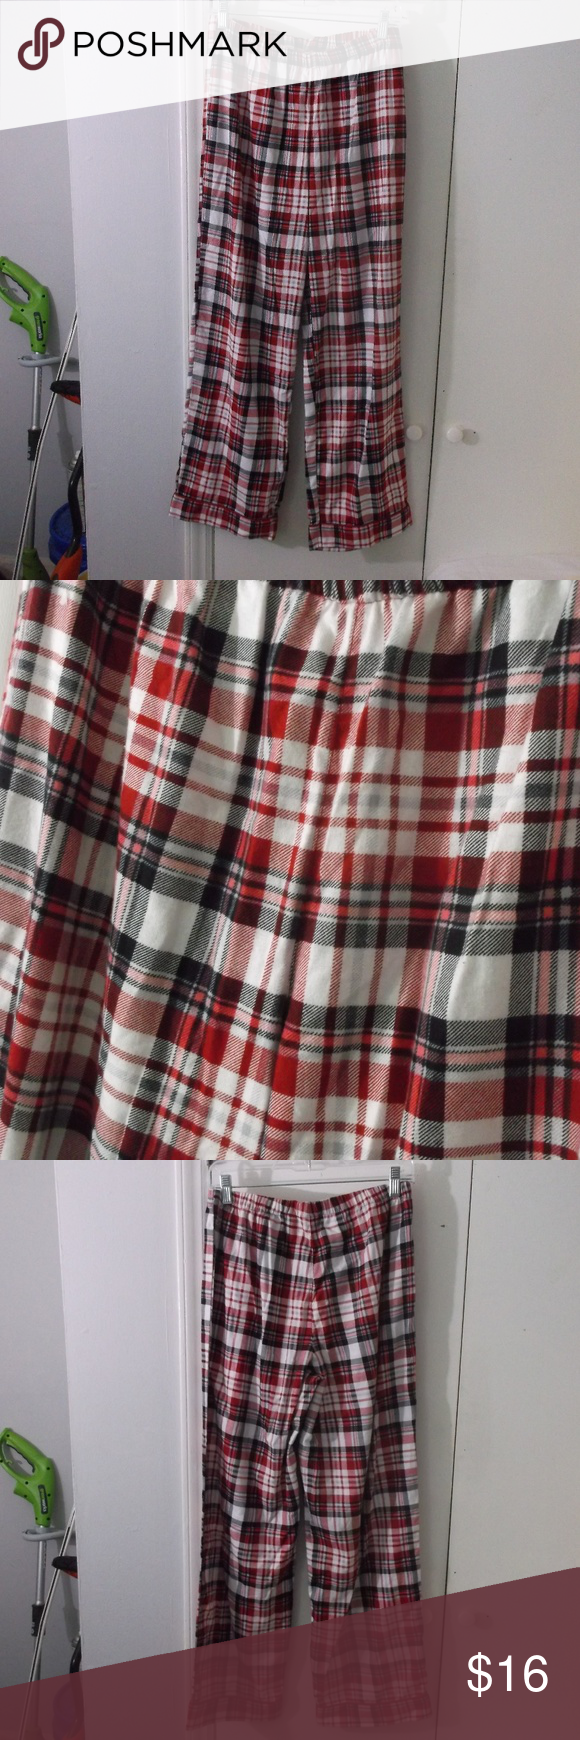 Red flannel pajama pants  NWOT Kim Rogers Red Plaid Flannel Sleep Pant S  My Posh Closet